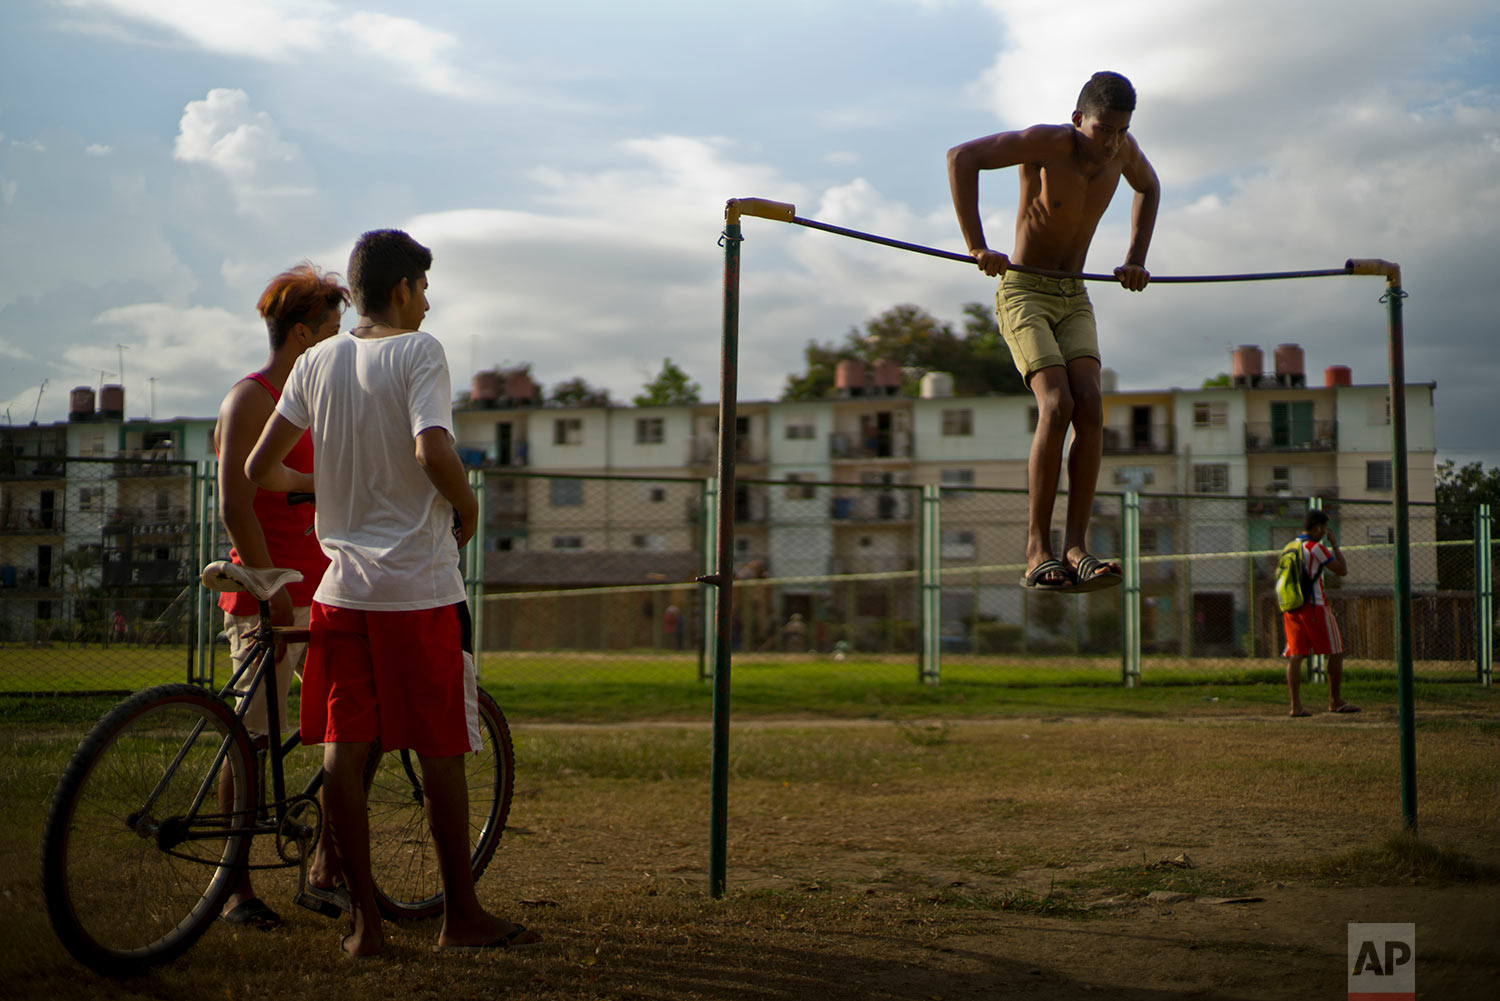 A youth works out on an exercise bar at a park by Plaza de la Revolucion in Guantanamo, Cuba,July 24, 2018.